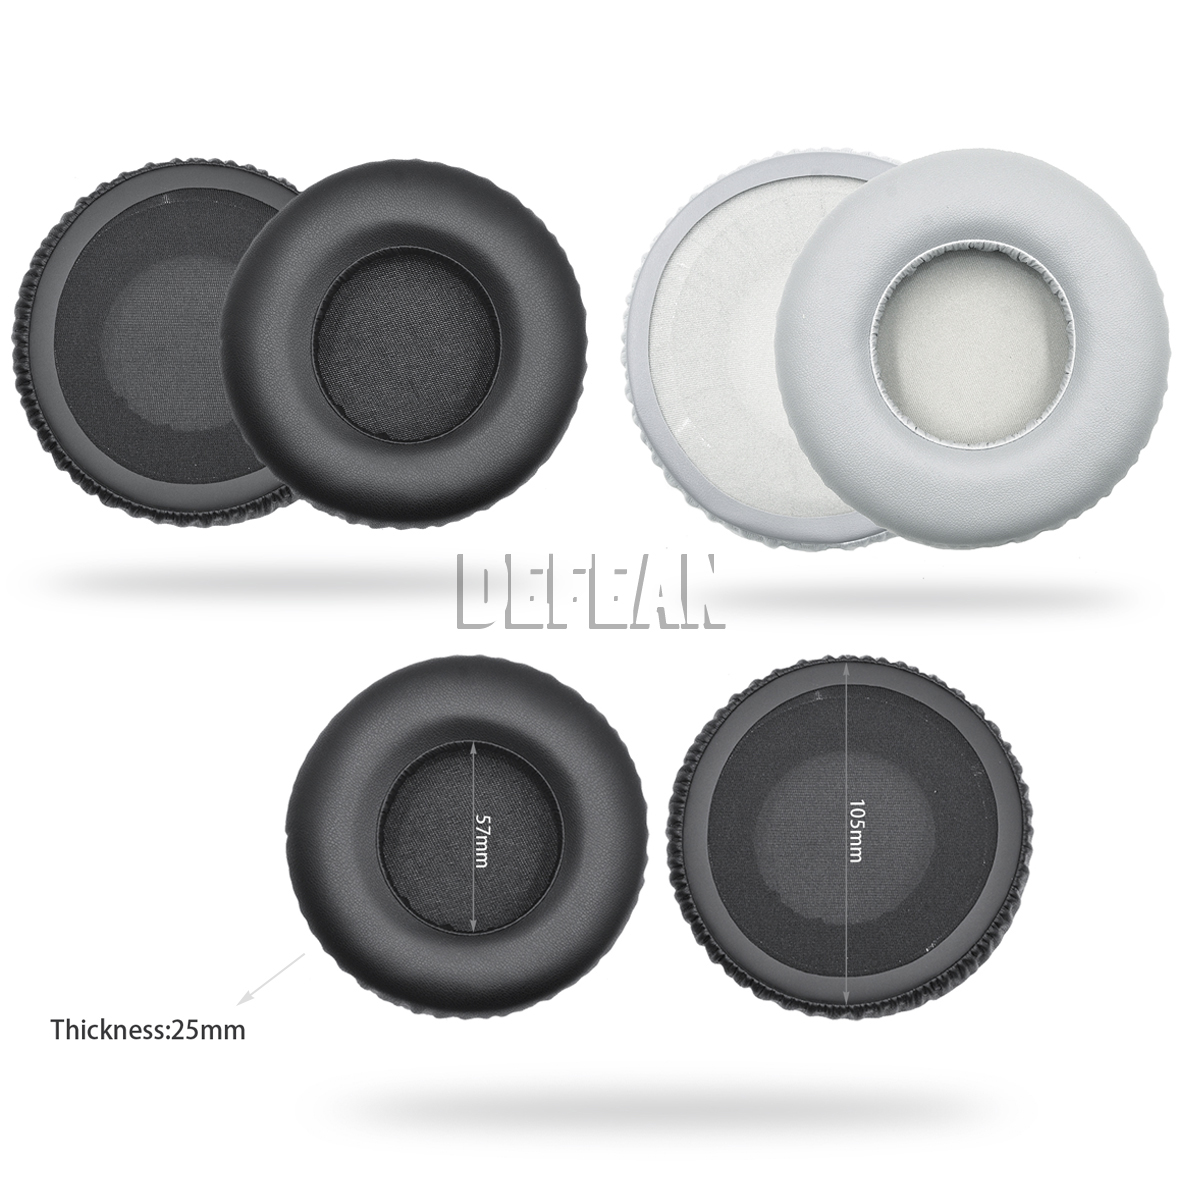 Replace 105mm Protein ear pads cover for Akg k550 k551 k553 k 550 551 headphones